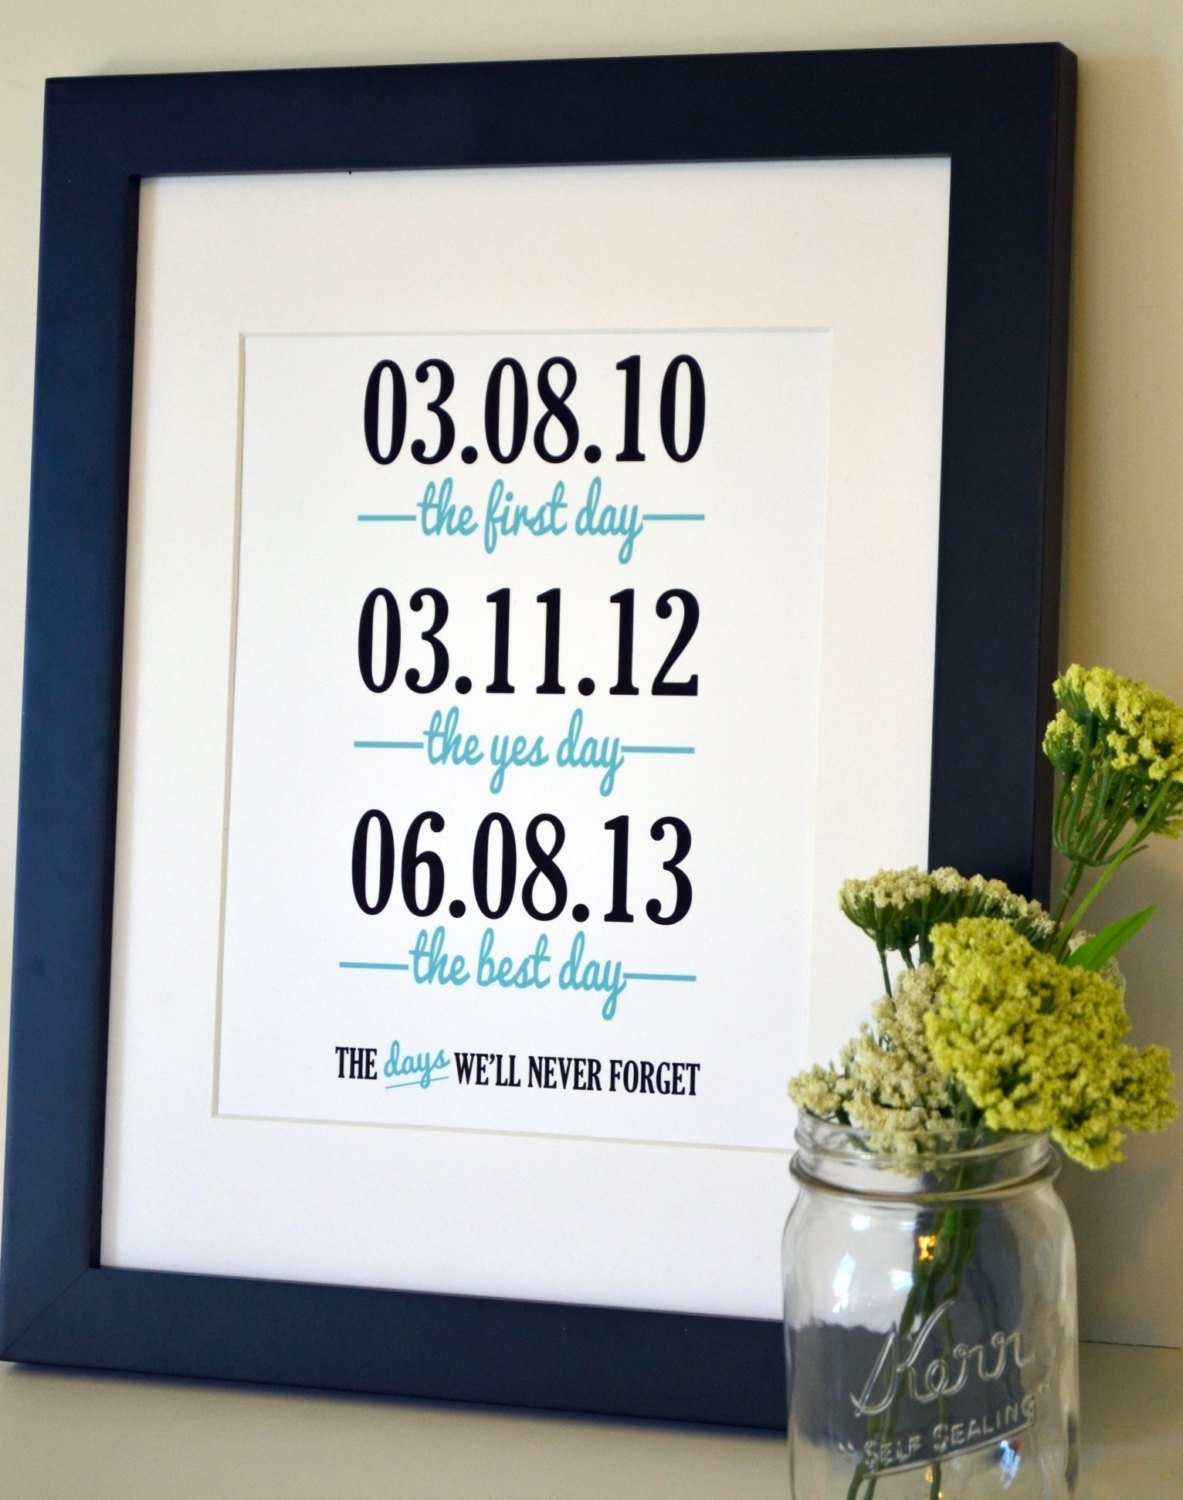 10 Unique Good Anniversary Ideas For Her good first wedding anniversary gift ideas b32 on images selection 6 2021